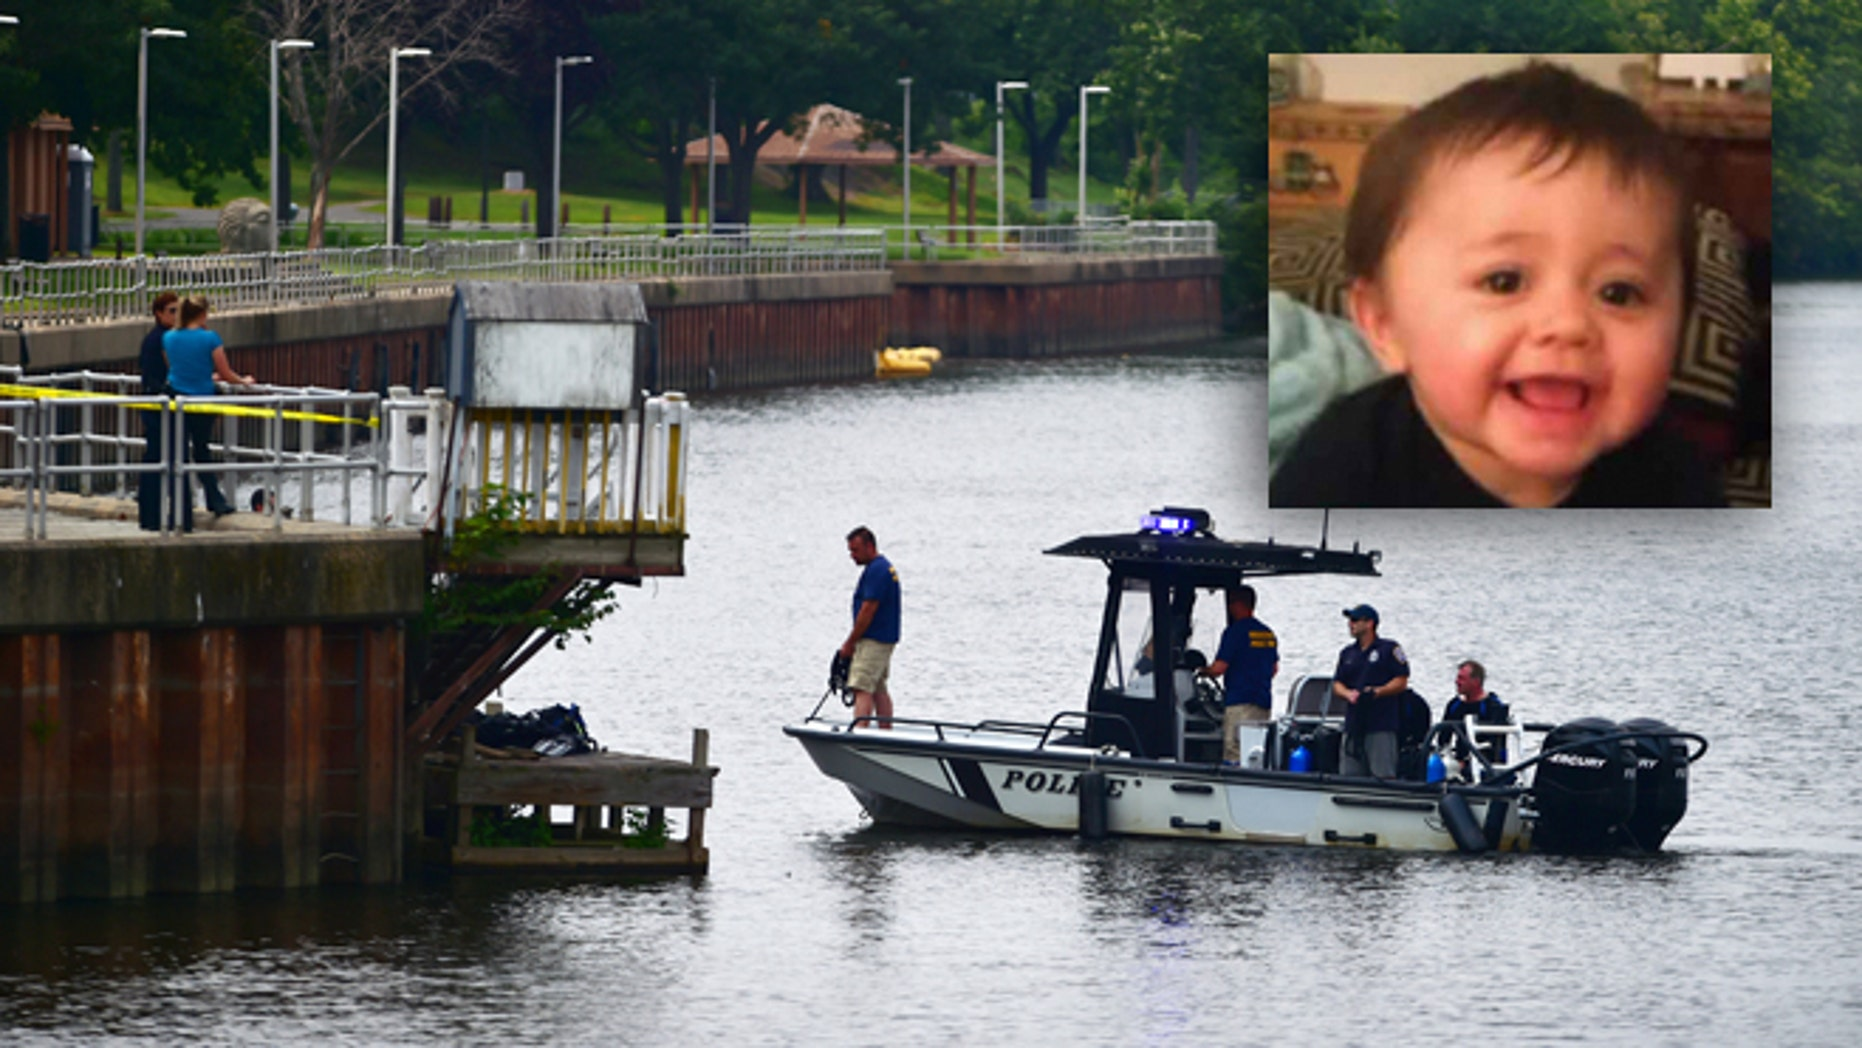 Authorities continue a search of the Connecticut River for a missing child, Monday, July 6, 2015, in Middletown, Conn. Police issued an alert Monday for 7-month-old Aaden Moreno, who may have been with his father when the man jumped from the Arrigoni Bridge Sunday night. (Catherine Avalone/The New Haven Register via AP) MANDATORY CREDIT